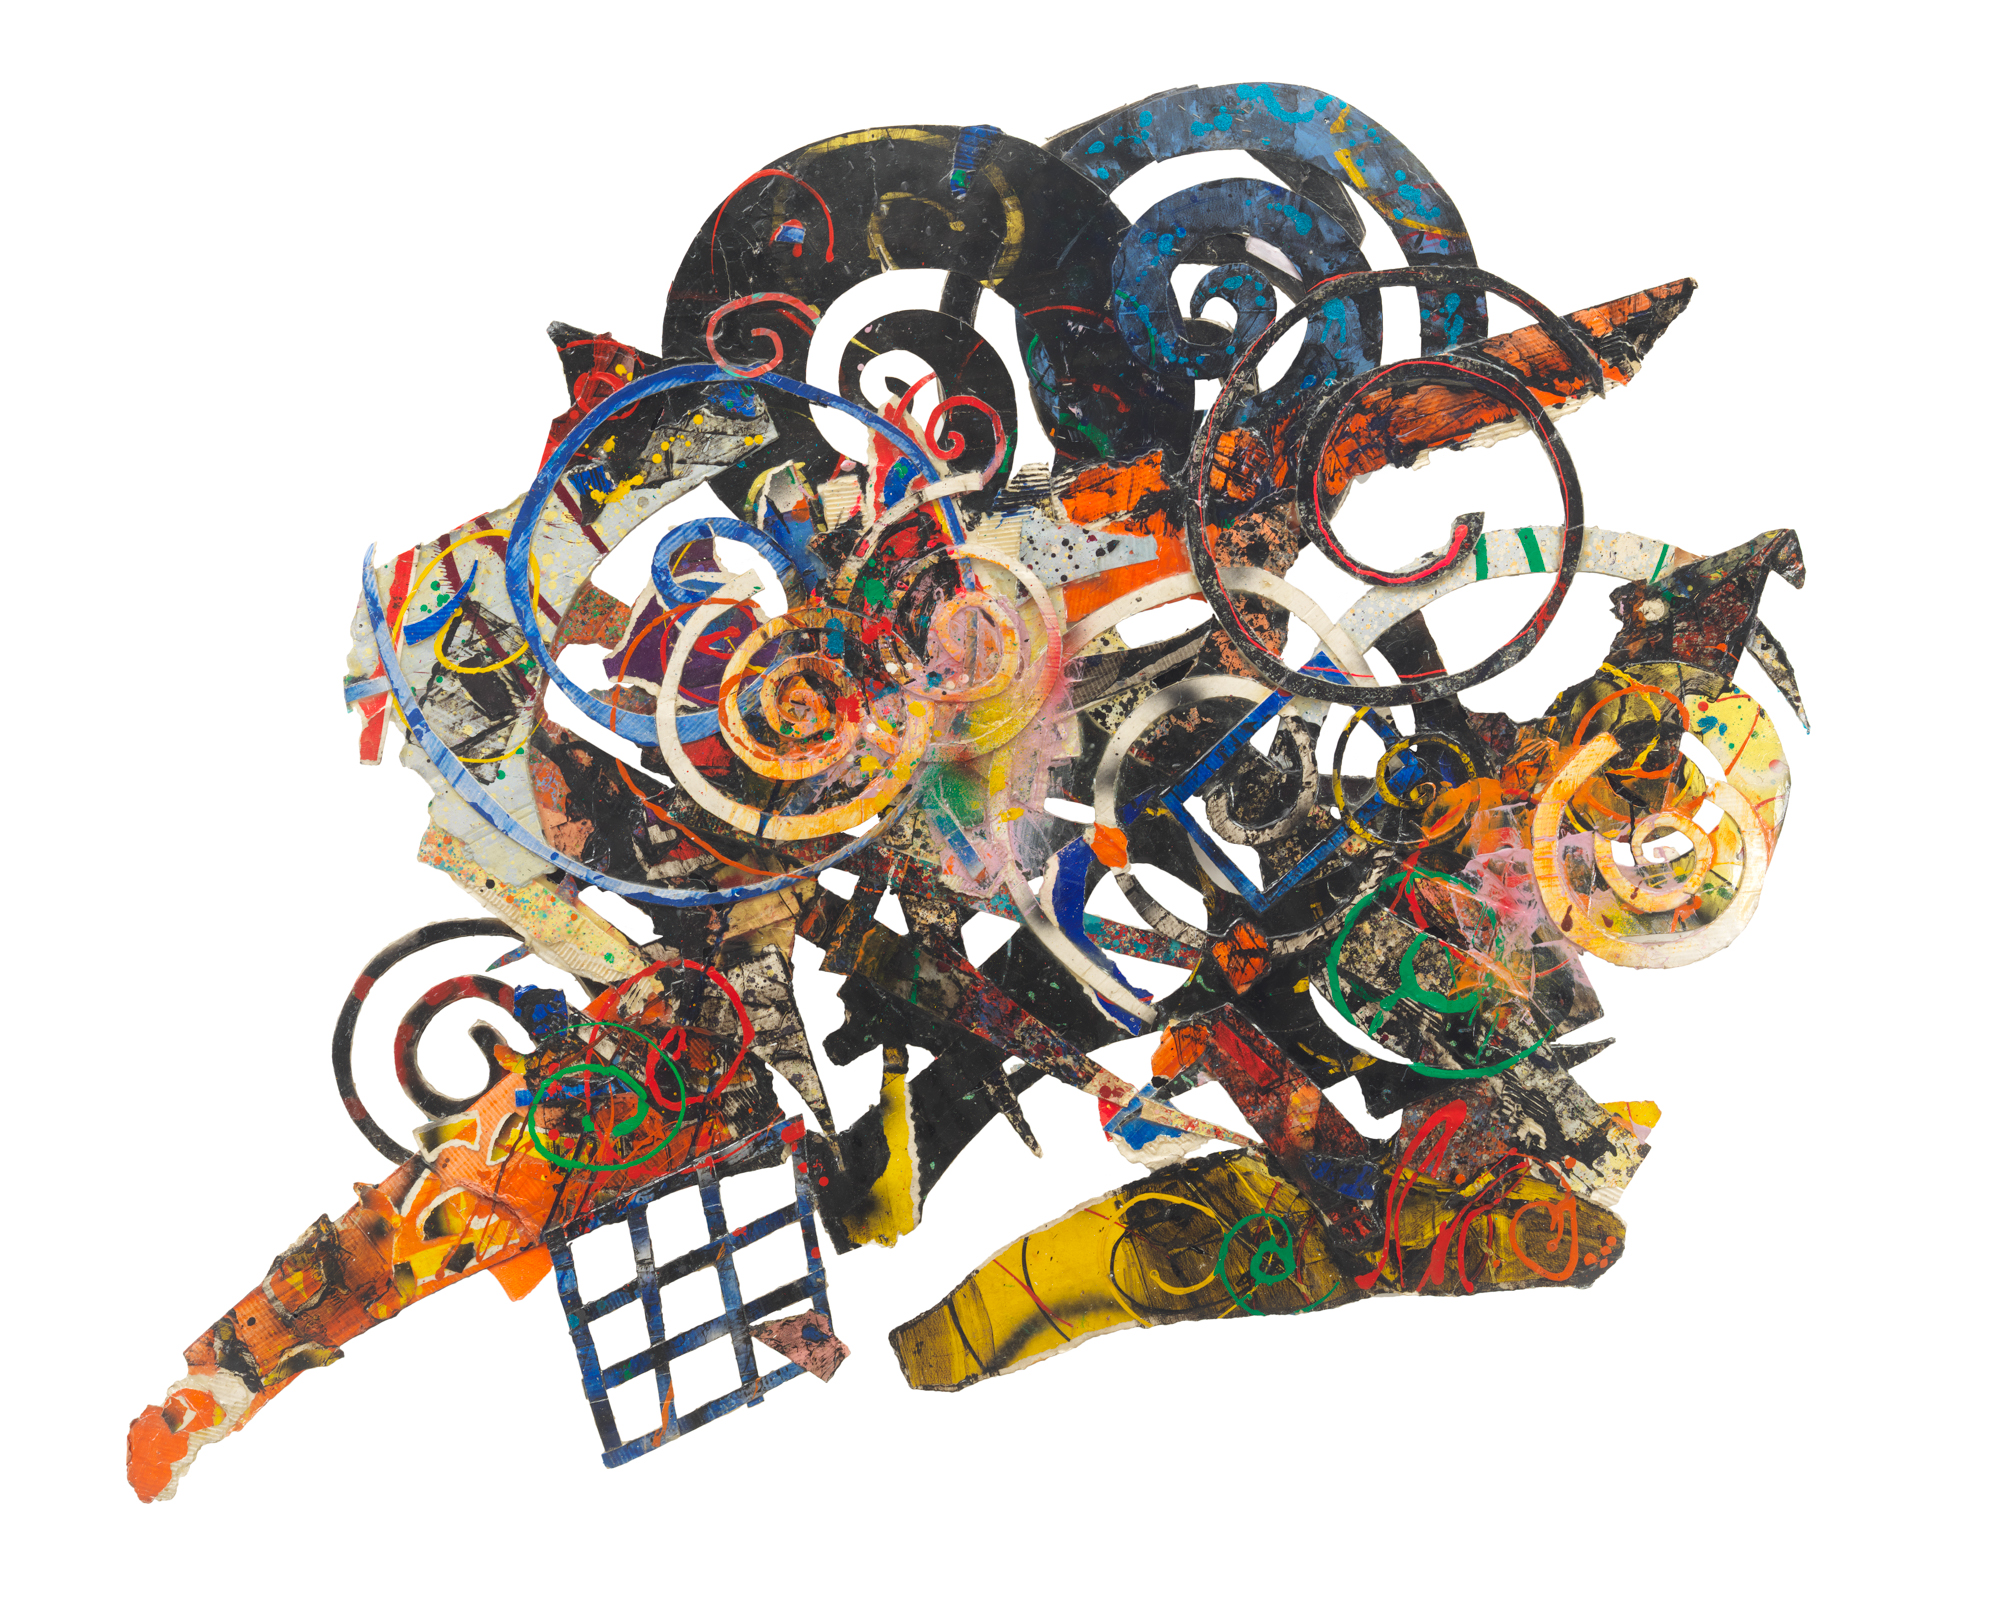 Al Loving, Humbird, 1989. Mixed media on board. 72 x 100 inches. Courtesy of the Estate of Al Loving and Garth Greenan Gallery, New York.